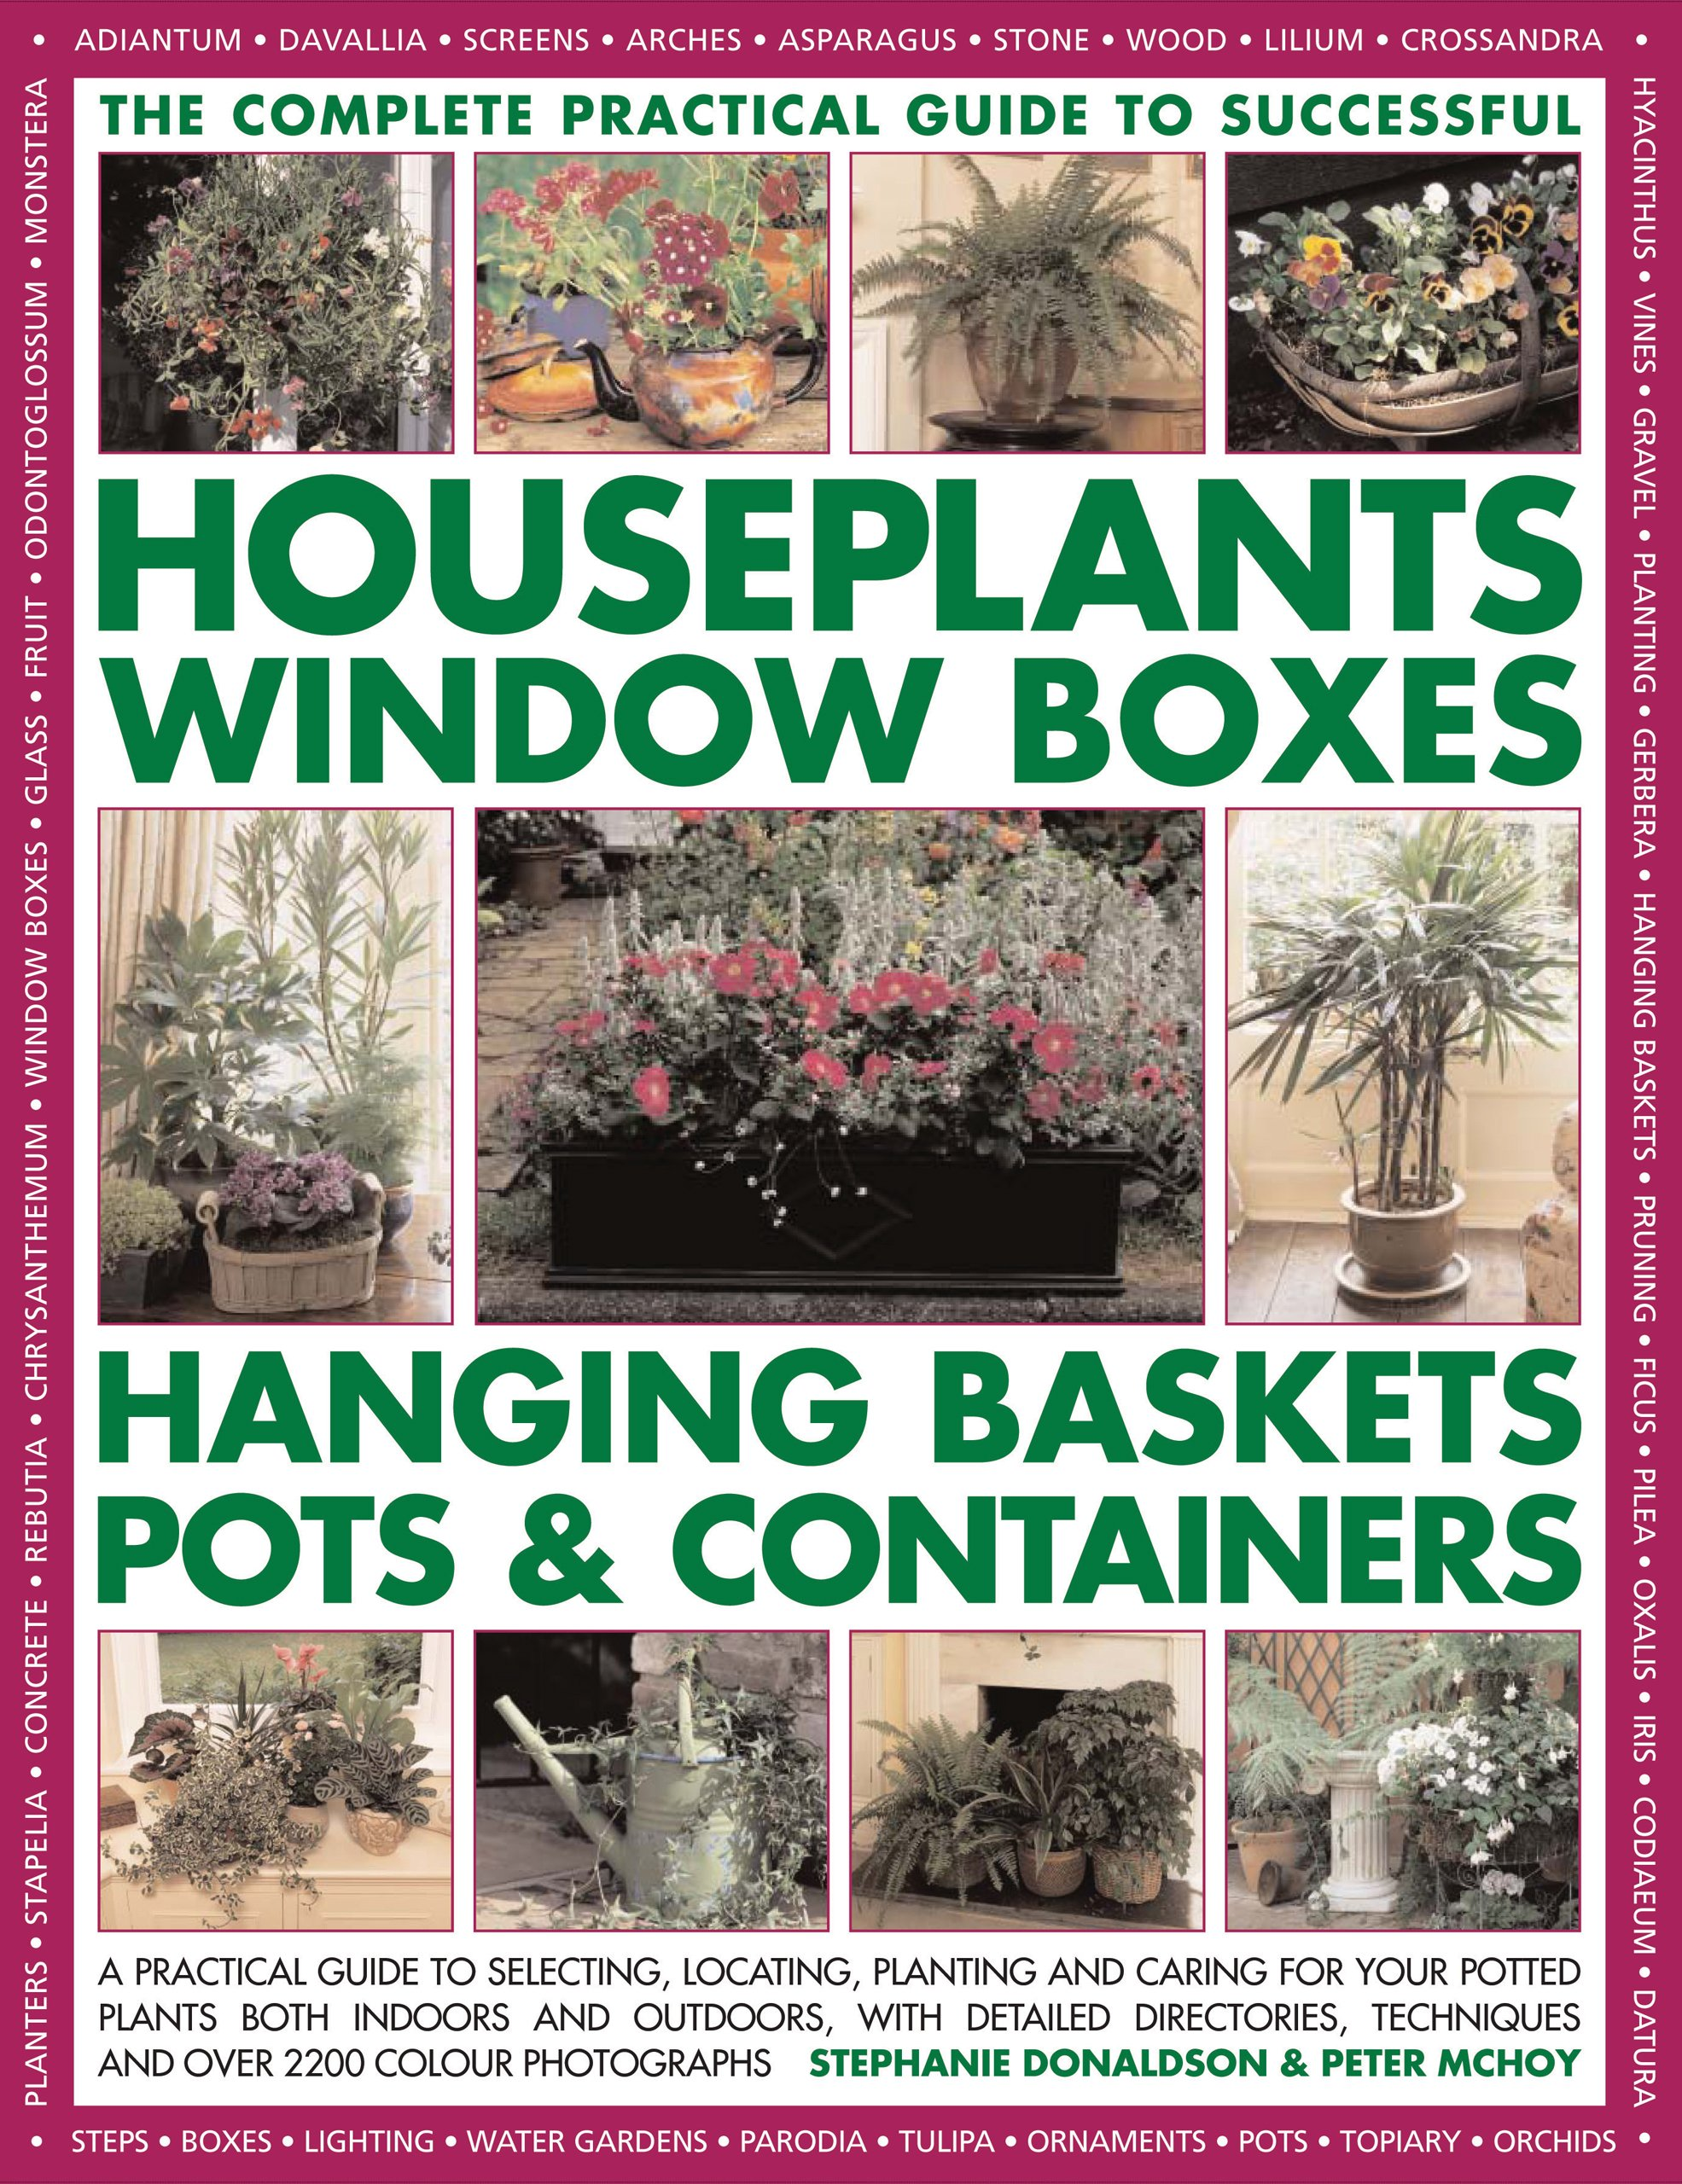 Successful Houseplants, Window Boxes, Hanging Baskets, Pots & Containers, Complete Practical Guide: A practical guide to selecting, locating, planting and tips, and over 2200 color photographs